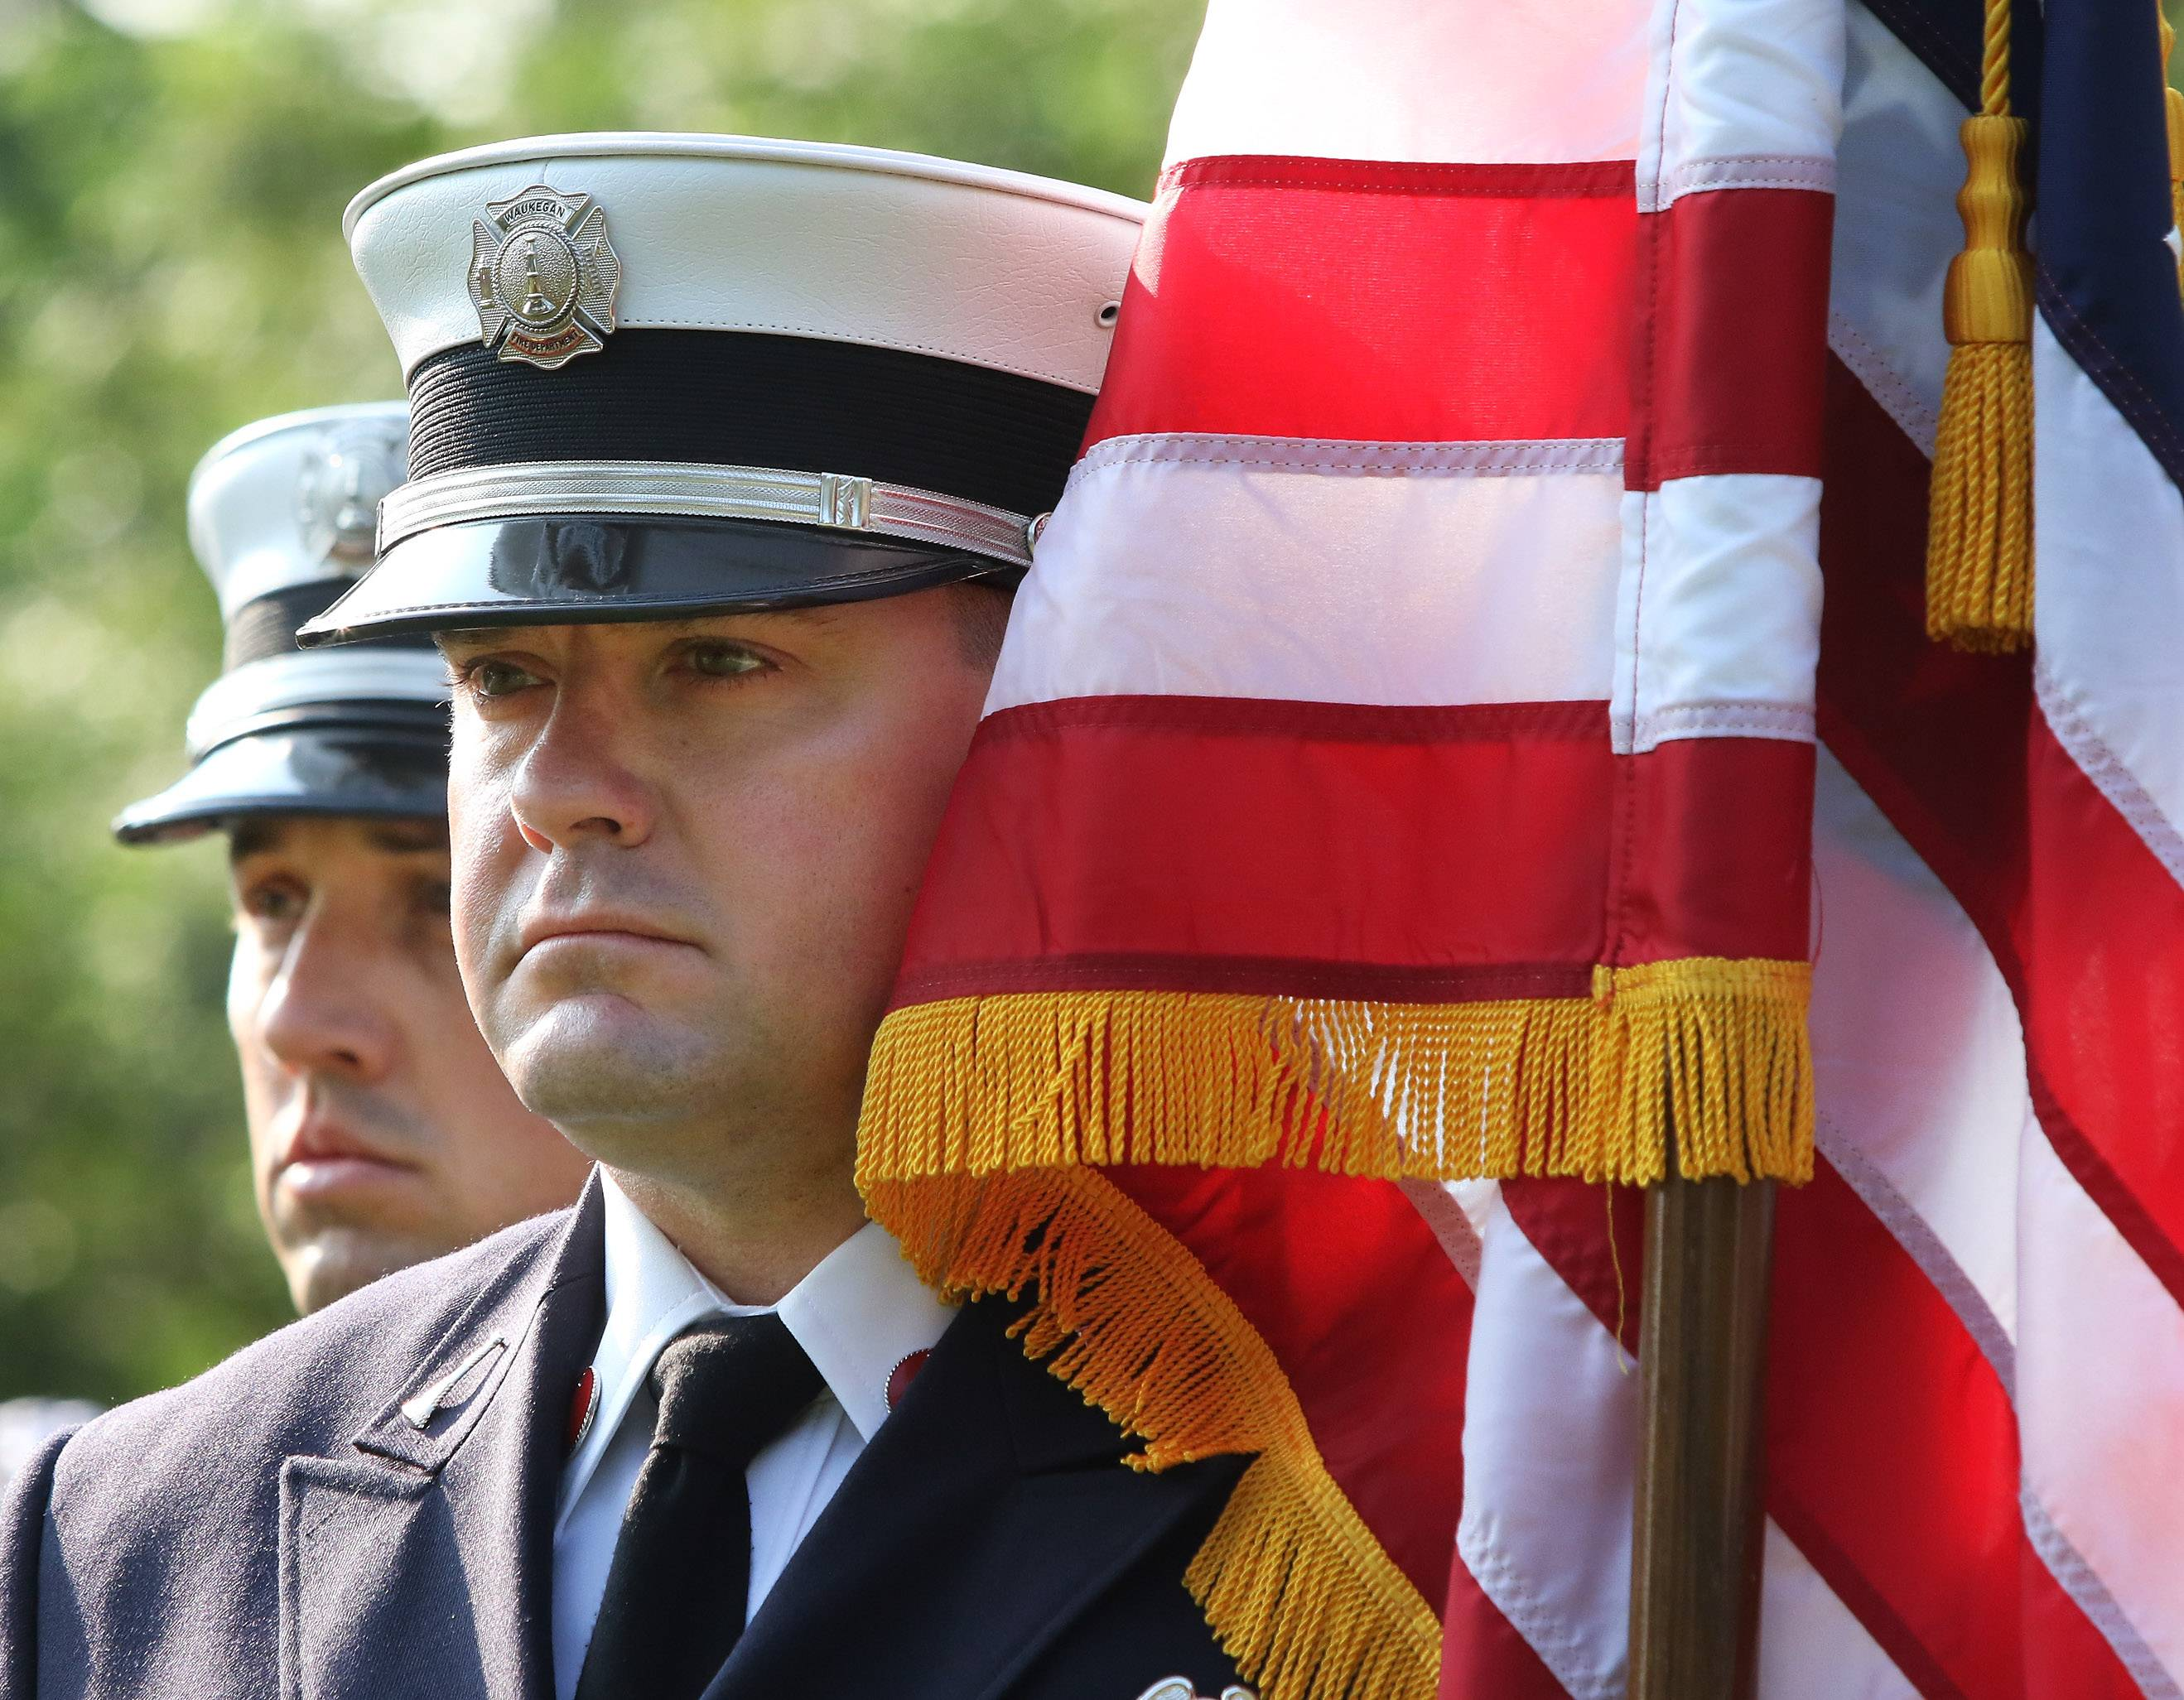 Images: 9/11 ceremonies in the suburbs